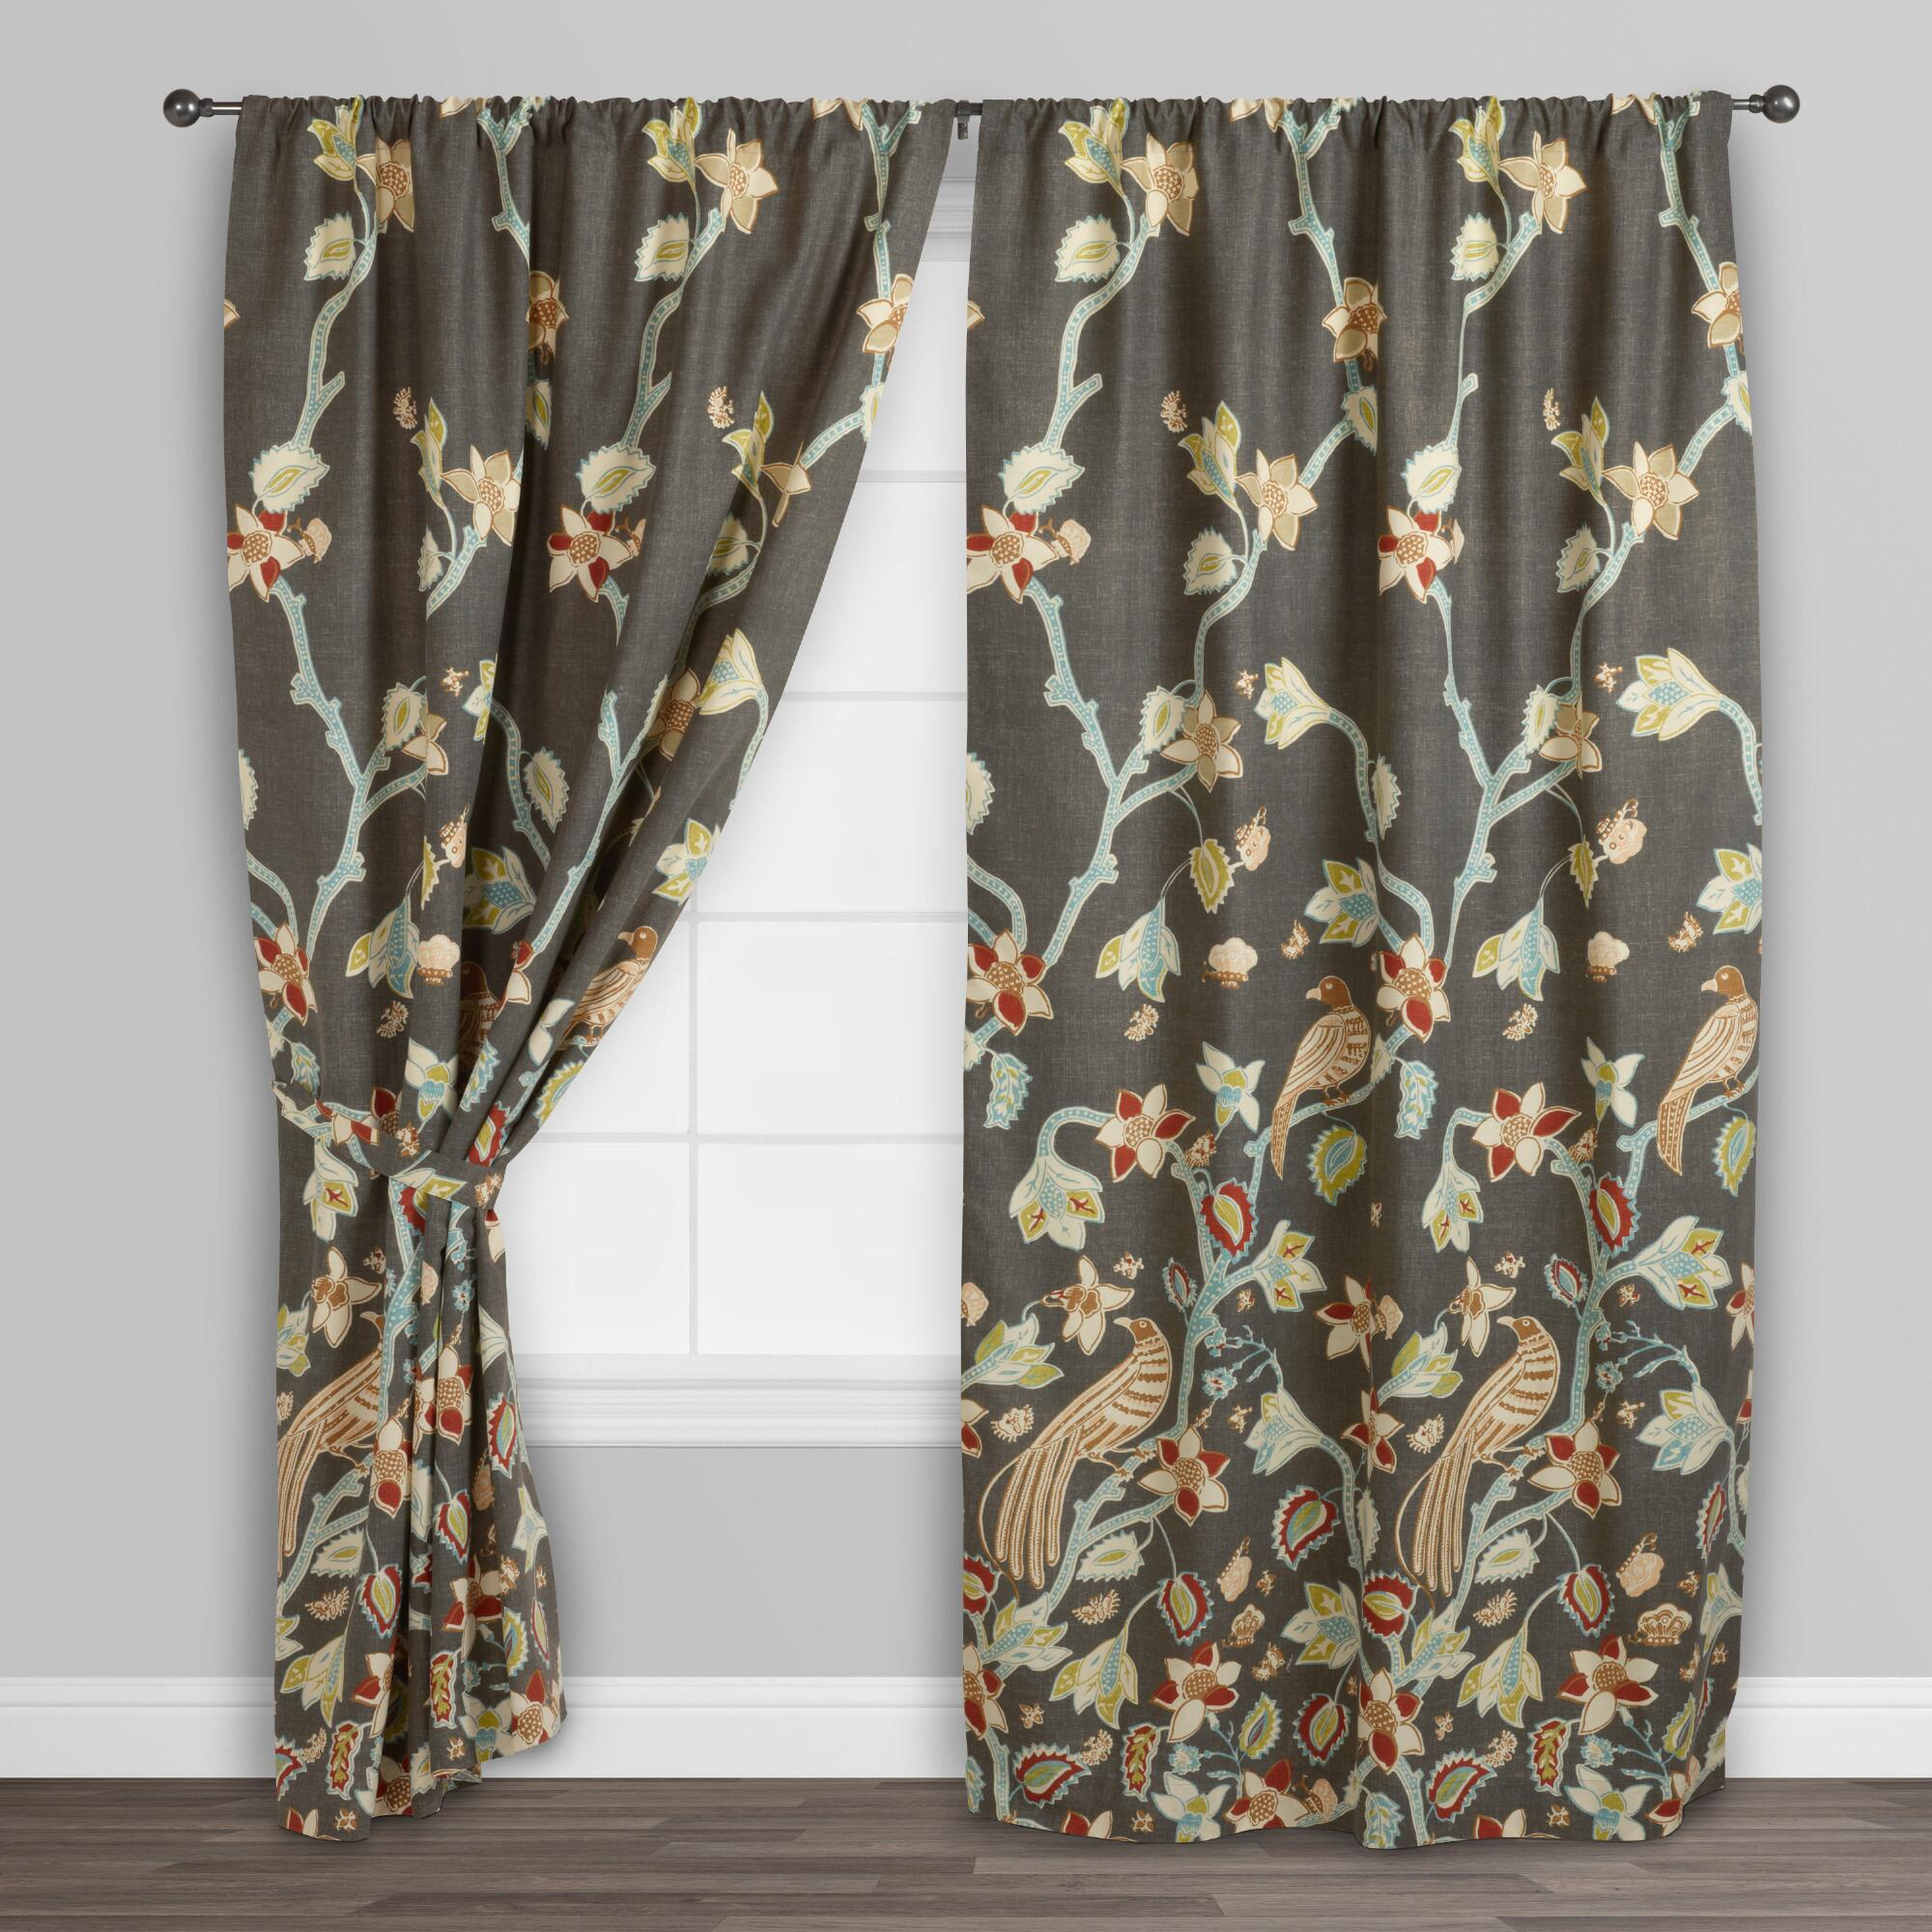 ideal the these pleat a floral soft made childrens home rich exclusive durable as curtains in ready for they choice birds naturally pencil with itm hearts cotton are any room